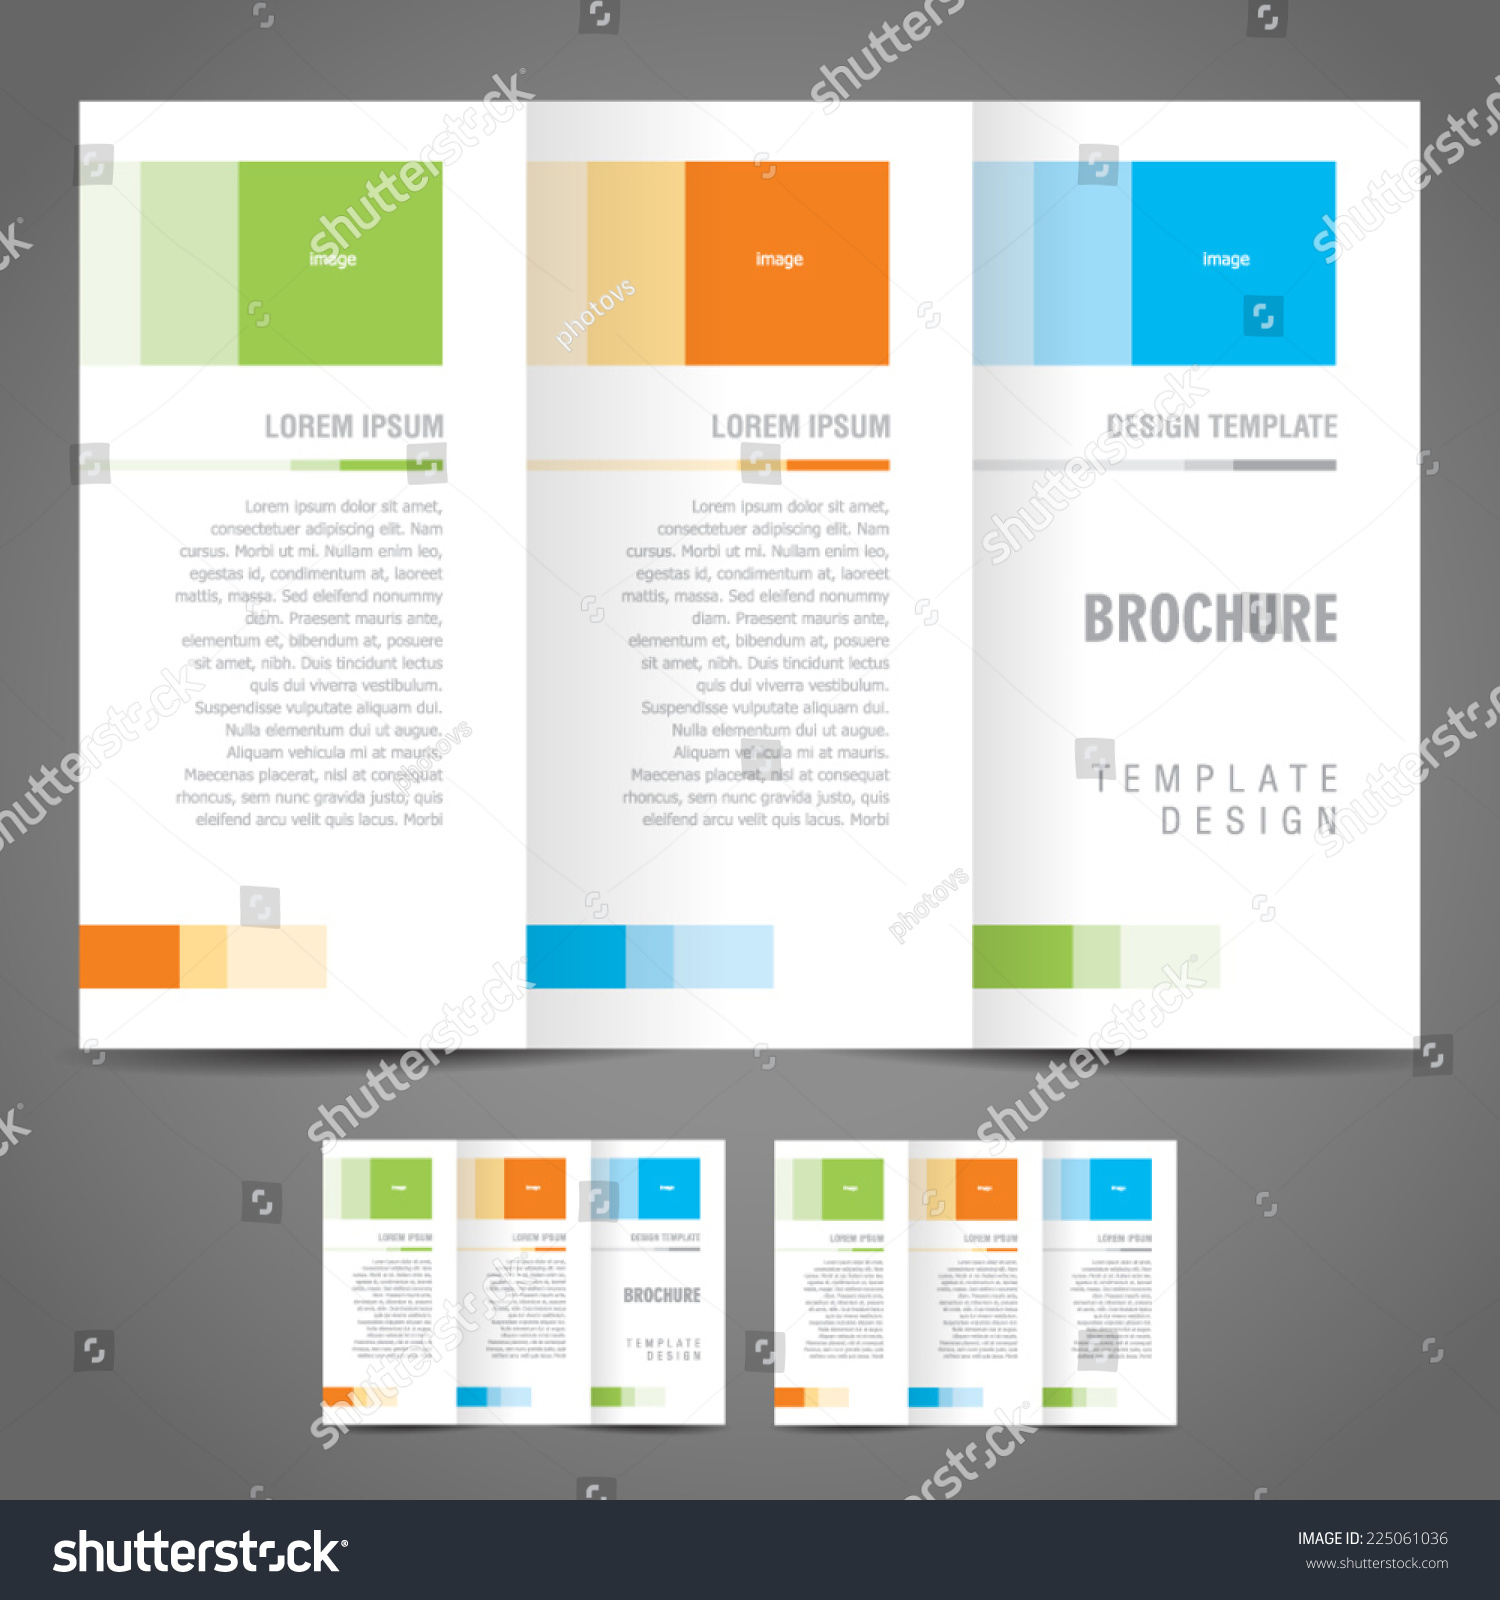 simple brochure design - simple brochure design template trifold stock vector